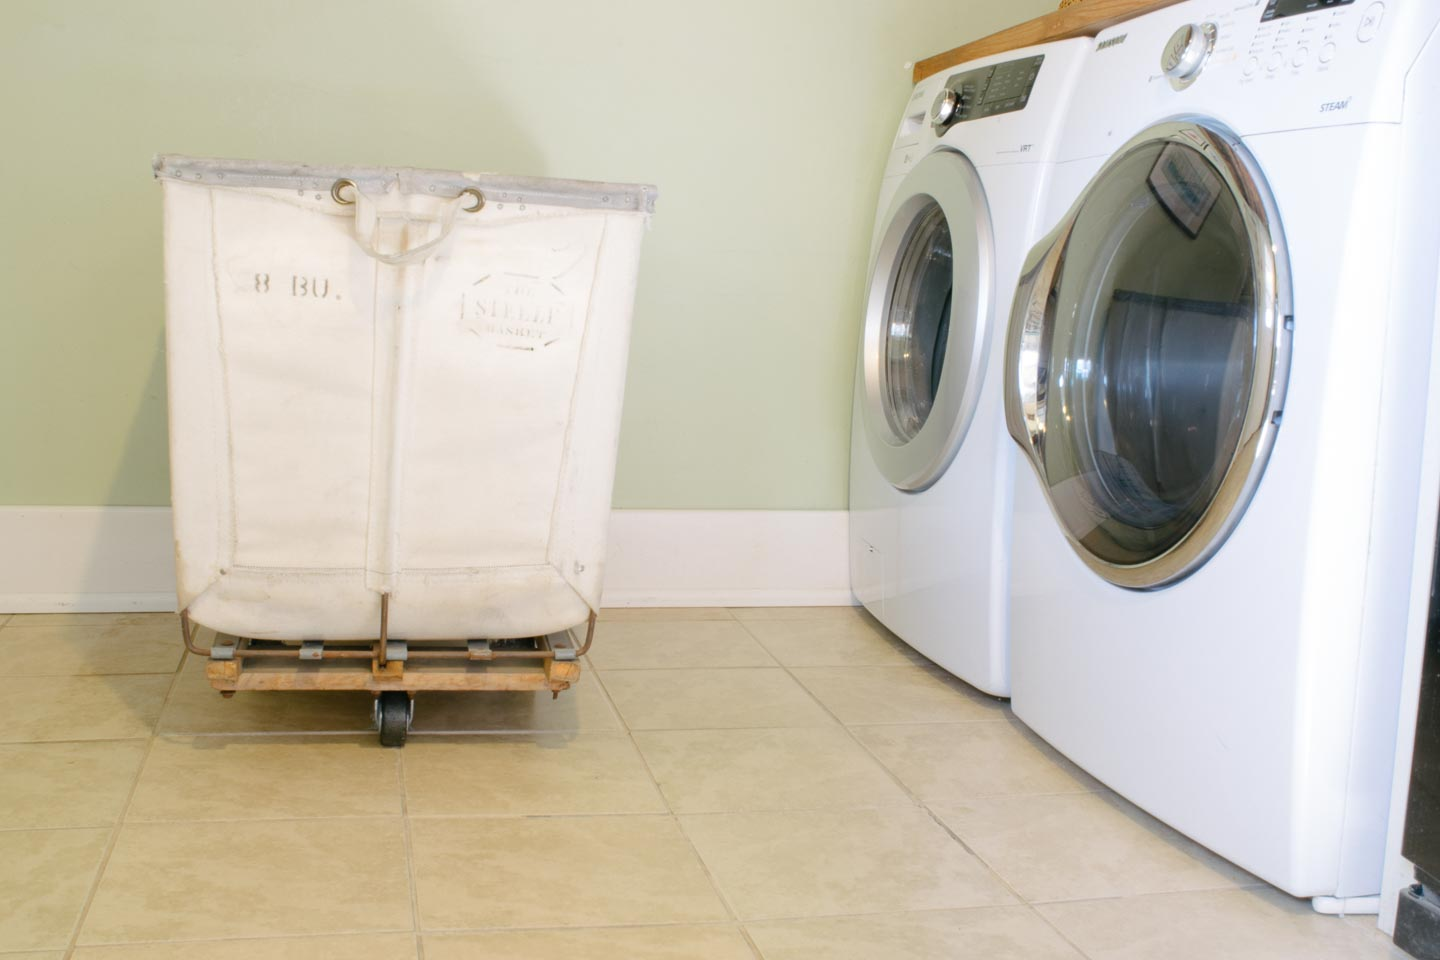 Steele Laundry Bin and Washer/ Dryer